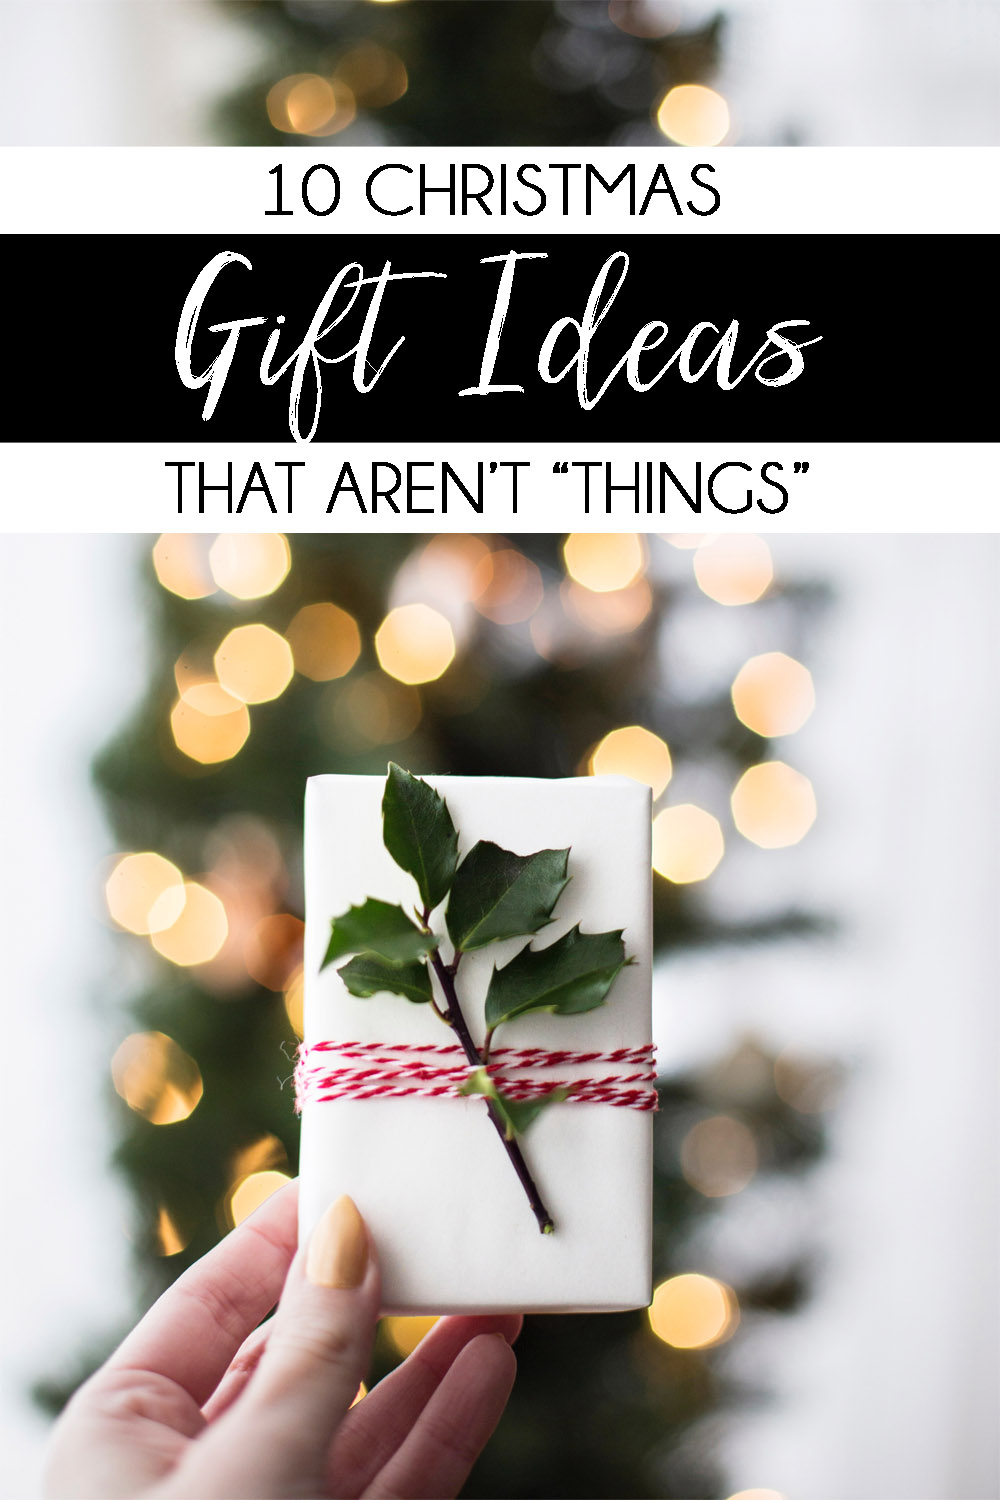 Christmas Gift Ideas that Aren't Things